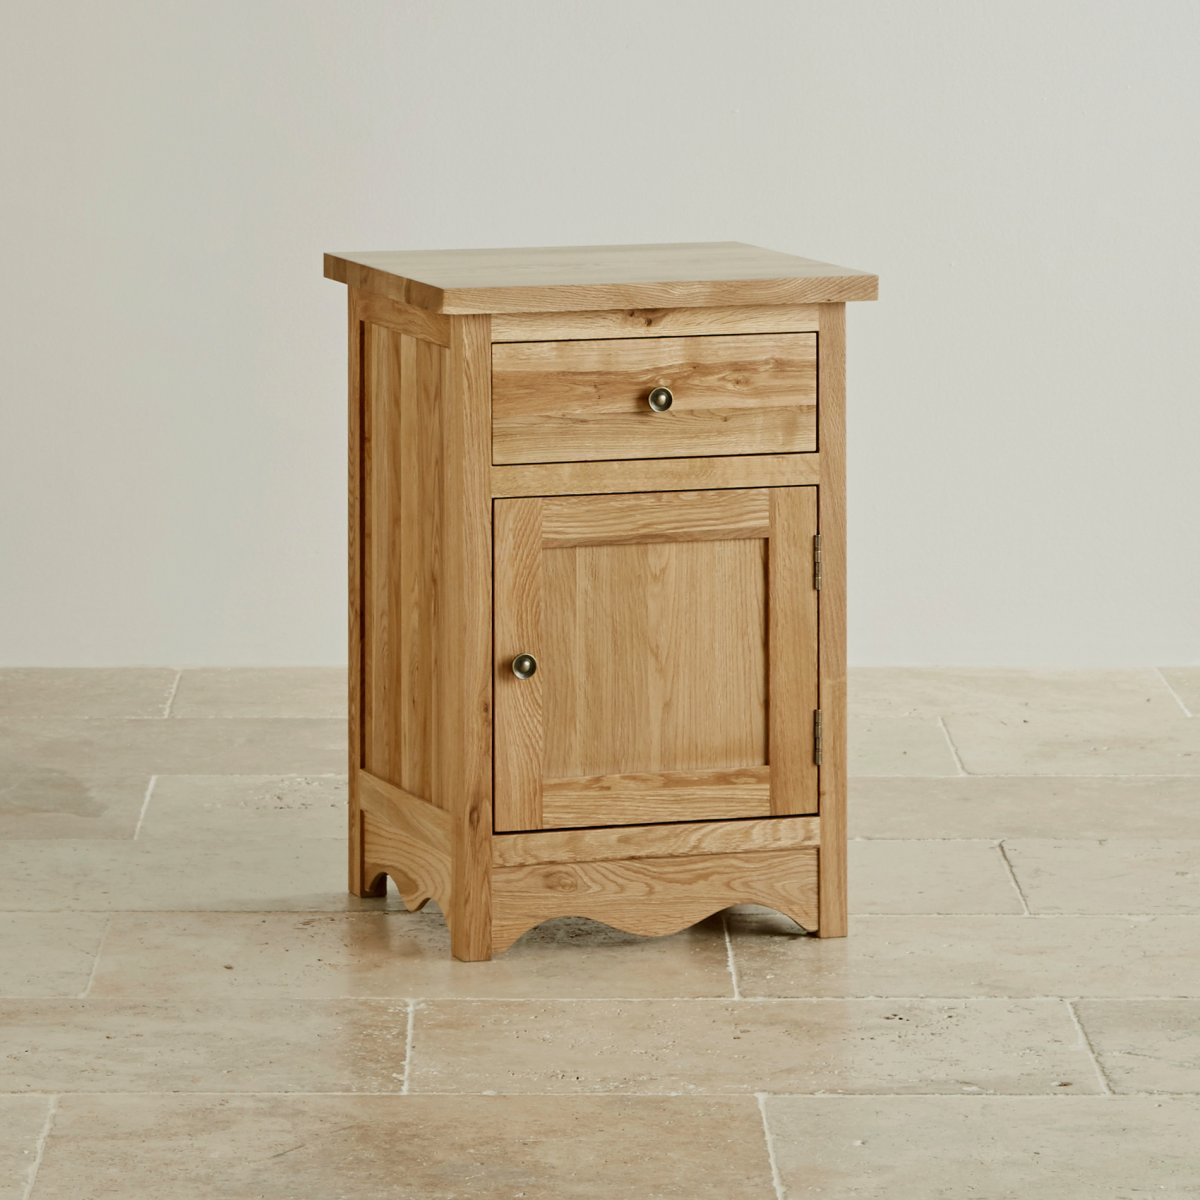 Cairo natural solid oak bedside cabinet for Very small bedside cabinets